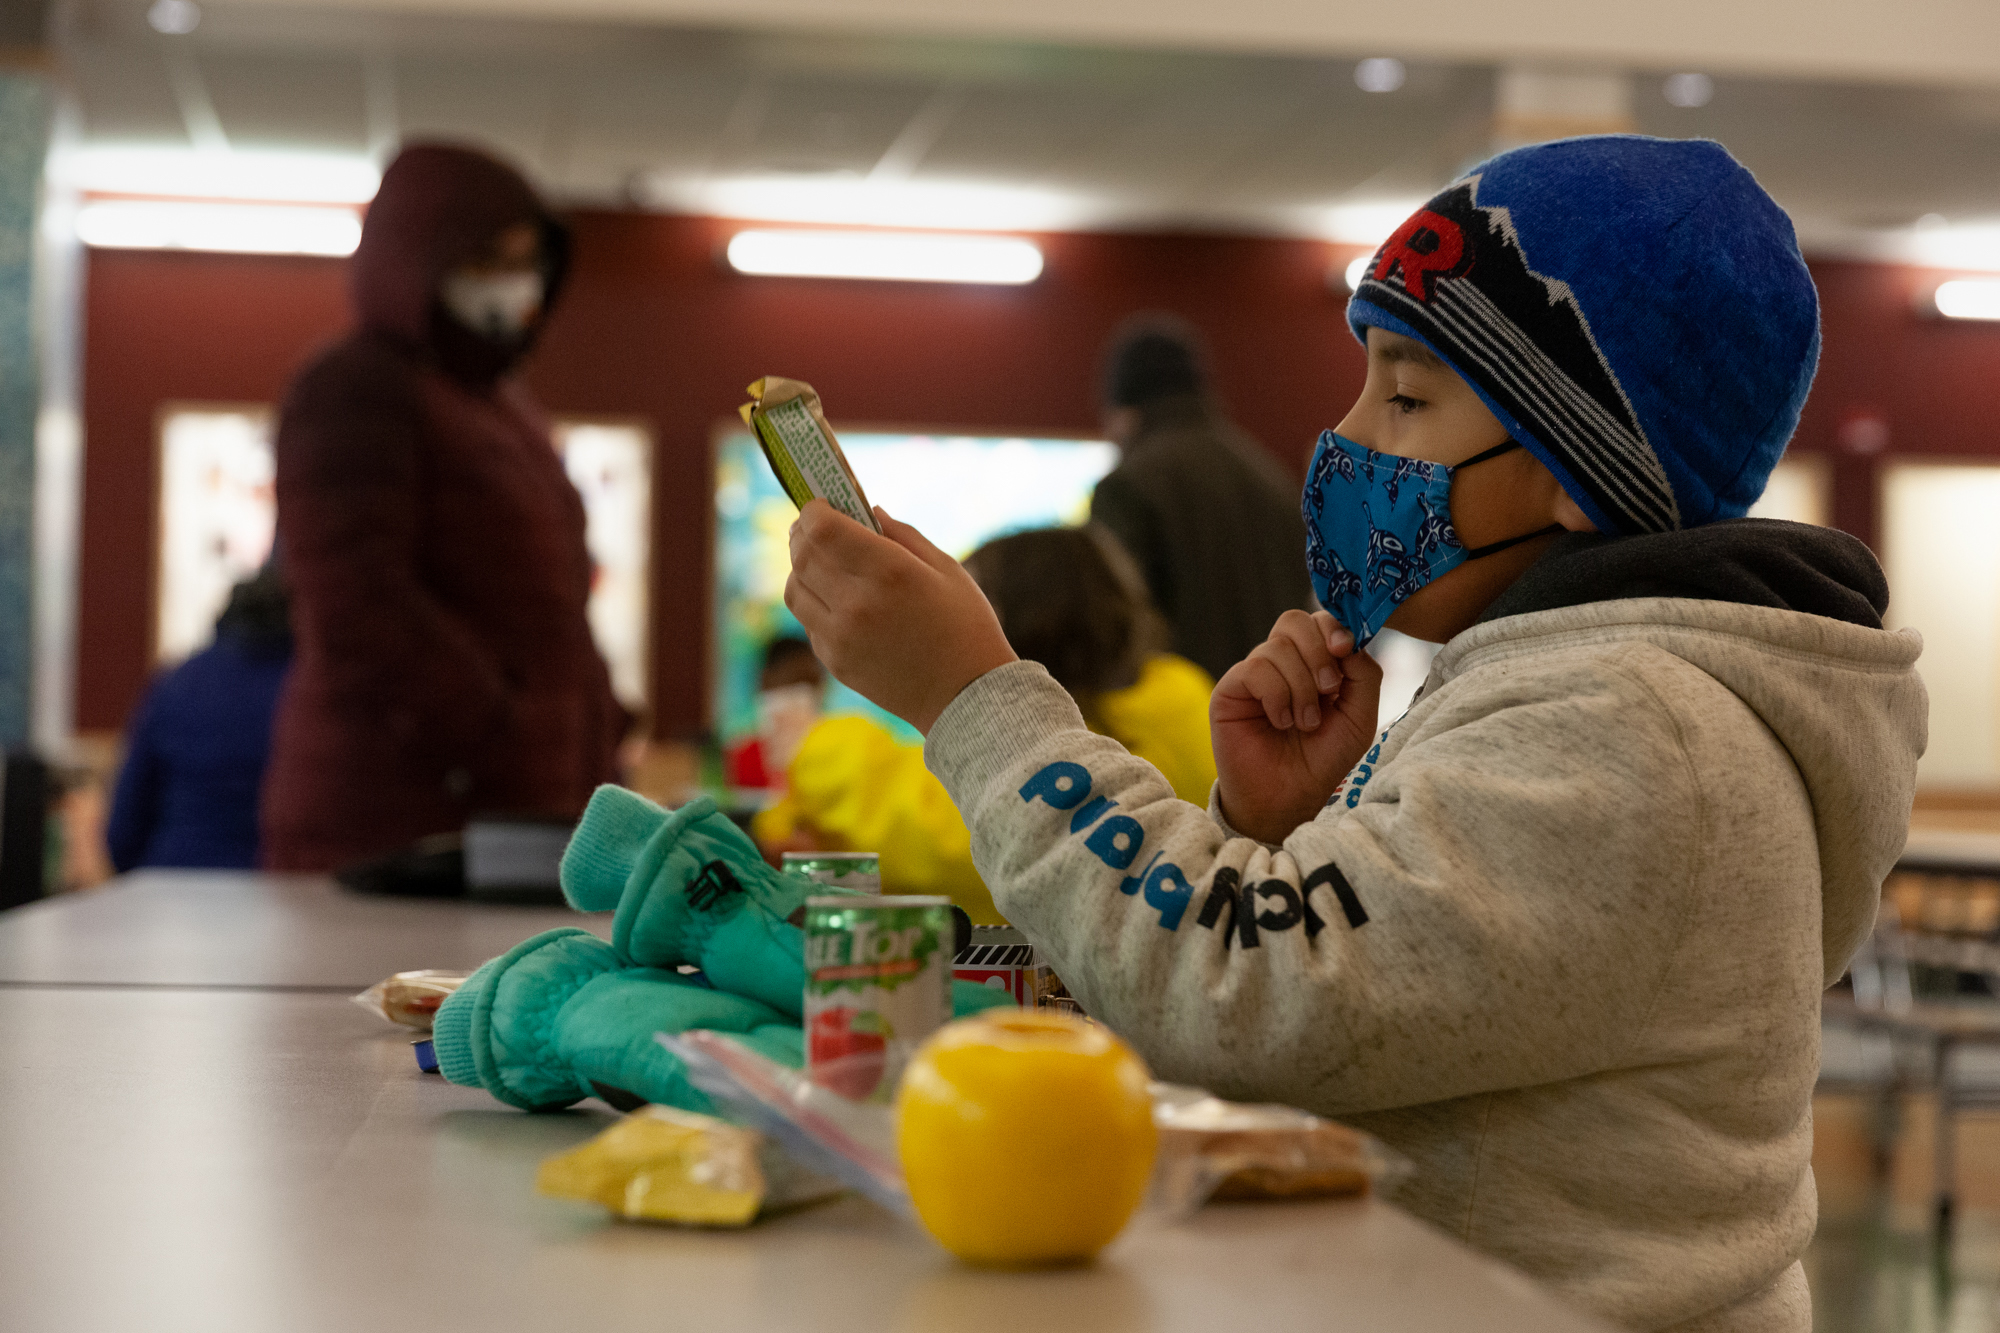 Tanner Cooper eyes his lunch at Sayéik Gastineau Community School where he and his sister returned for in-person learning on Thursday, Jan. 14, 2021, in Juneau, Alaska. (Photo by Rashah McChesney/KTOO)